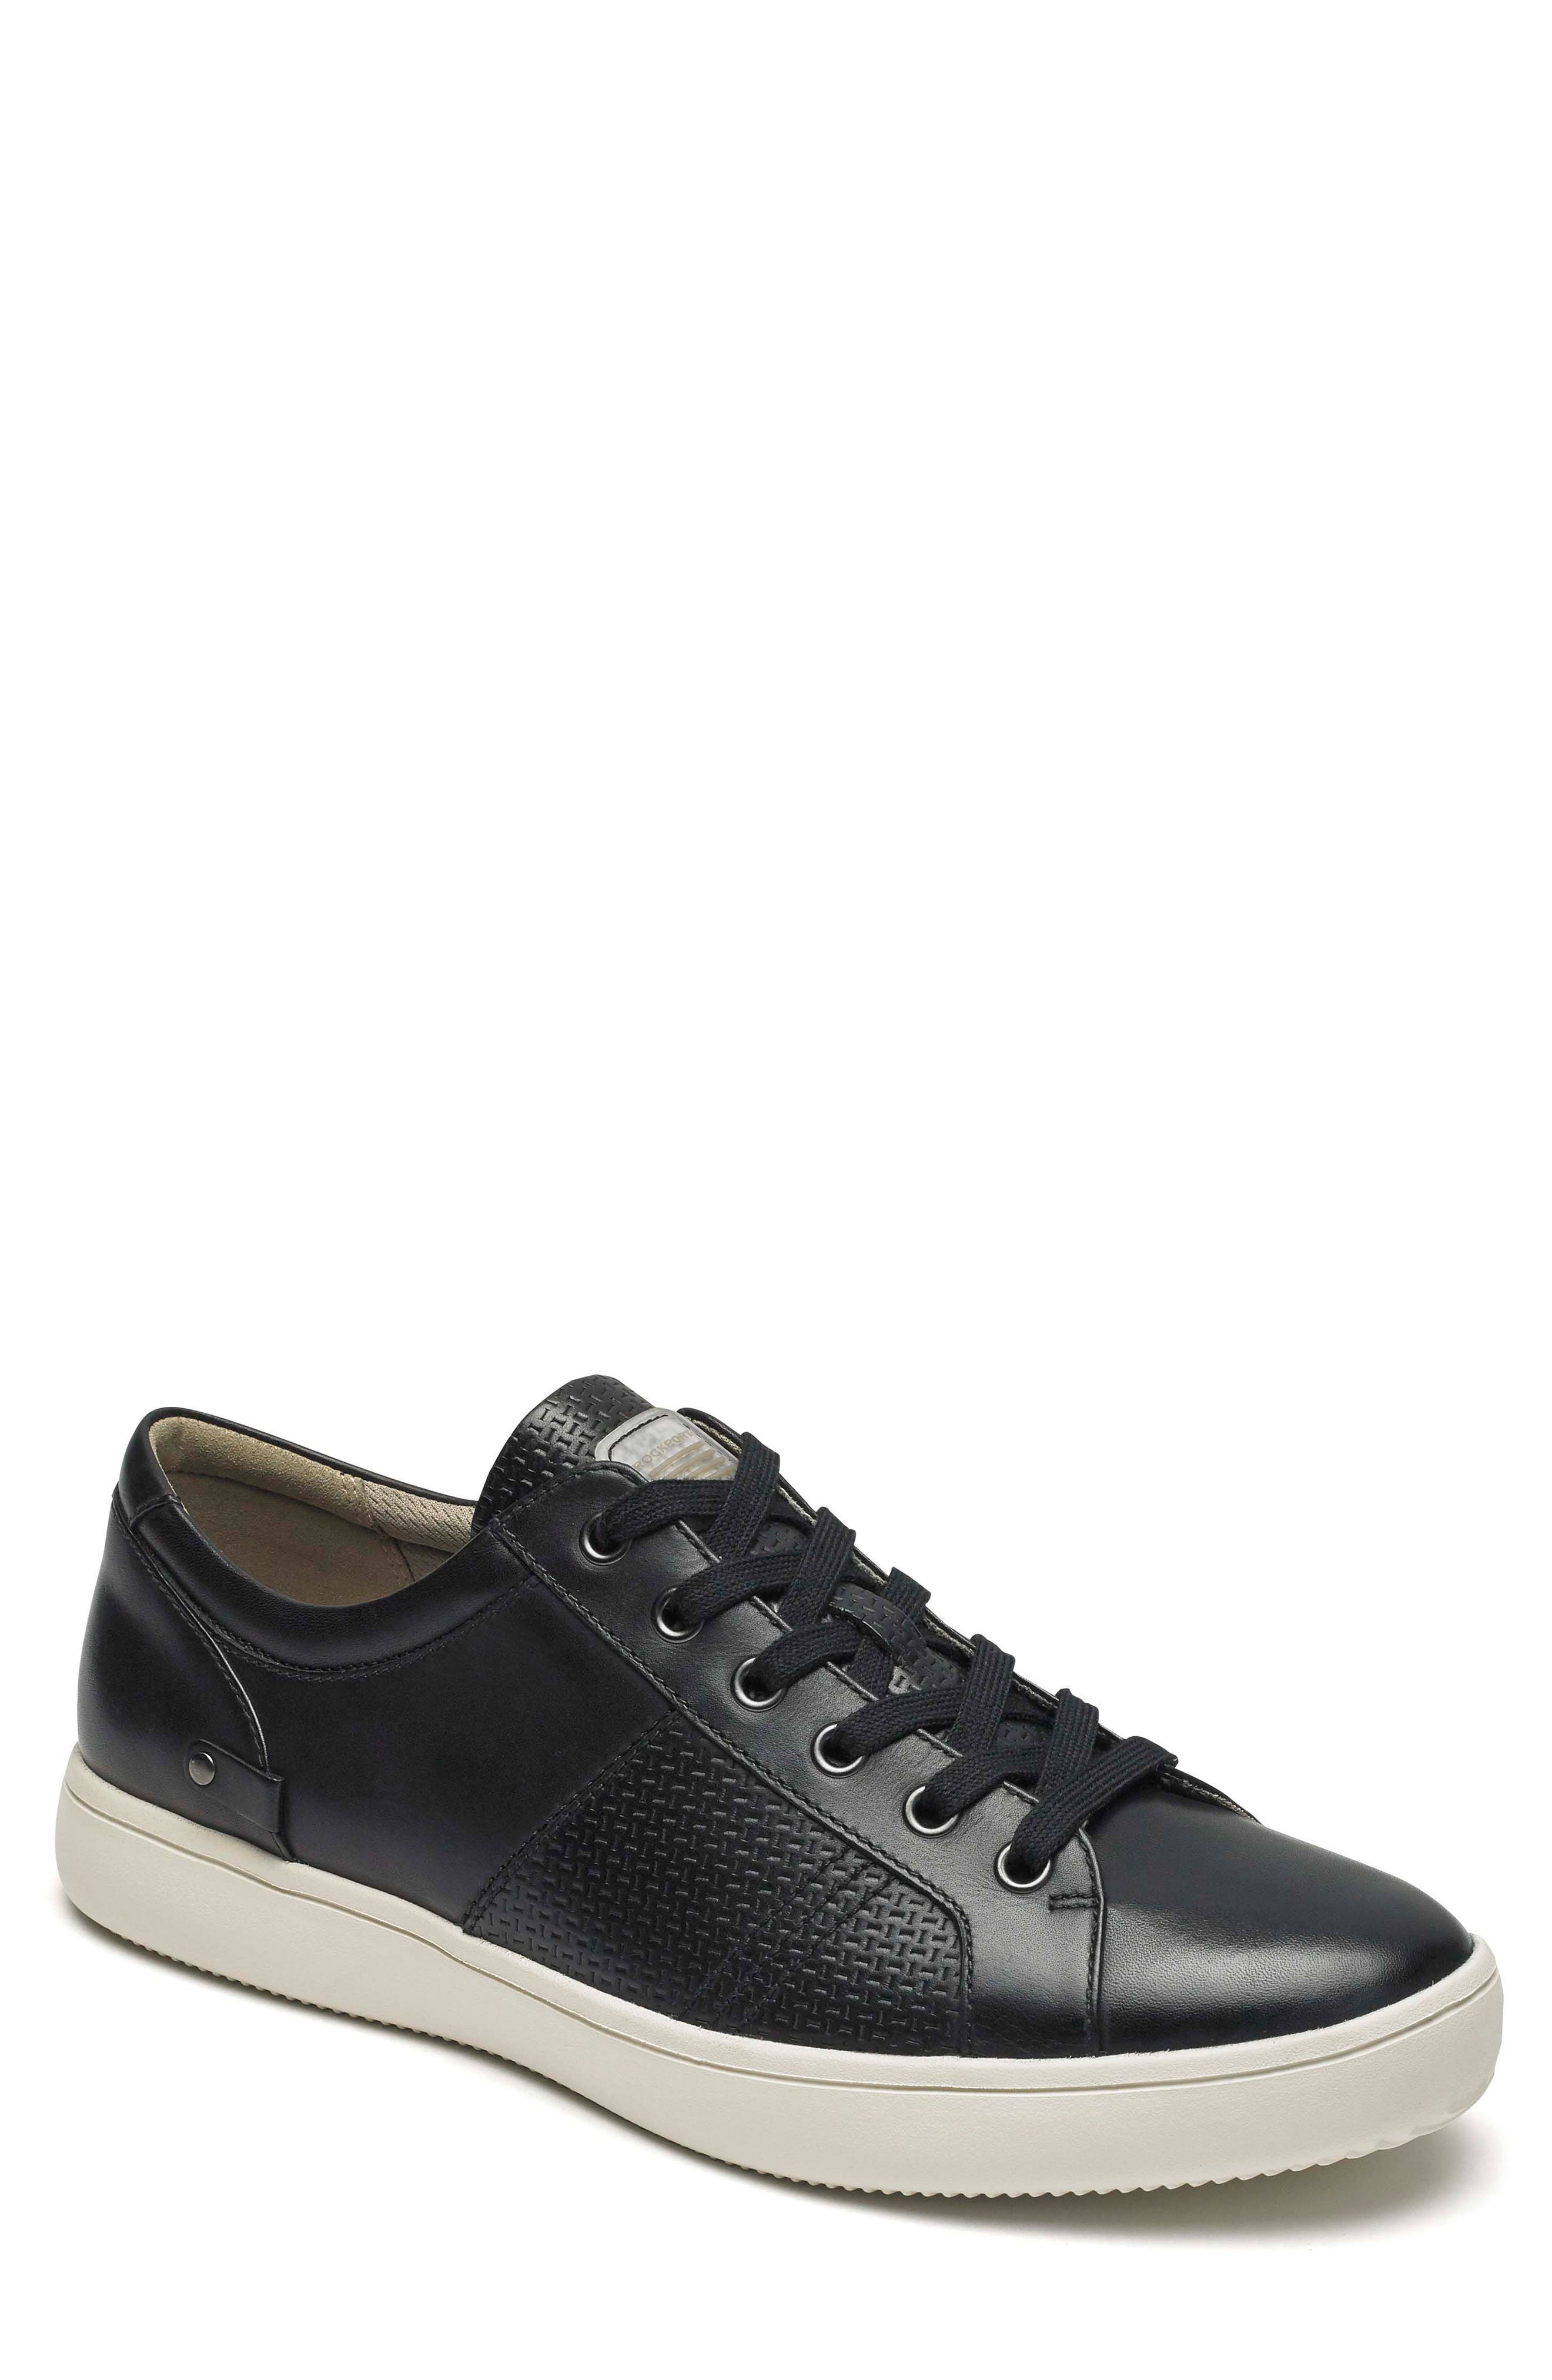 City Lites Collection Lace-Up Sneaker, Main, color, 001